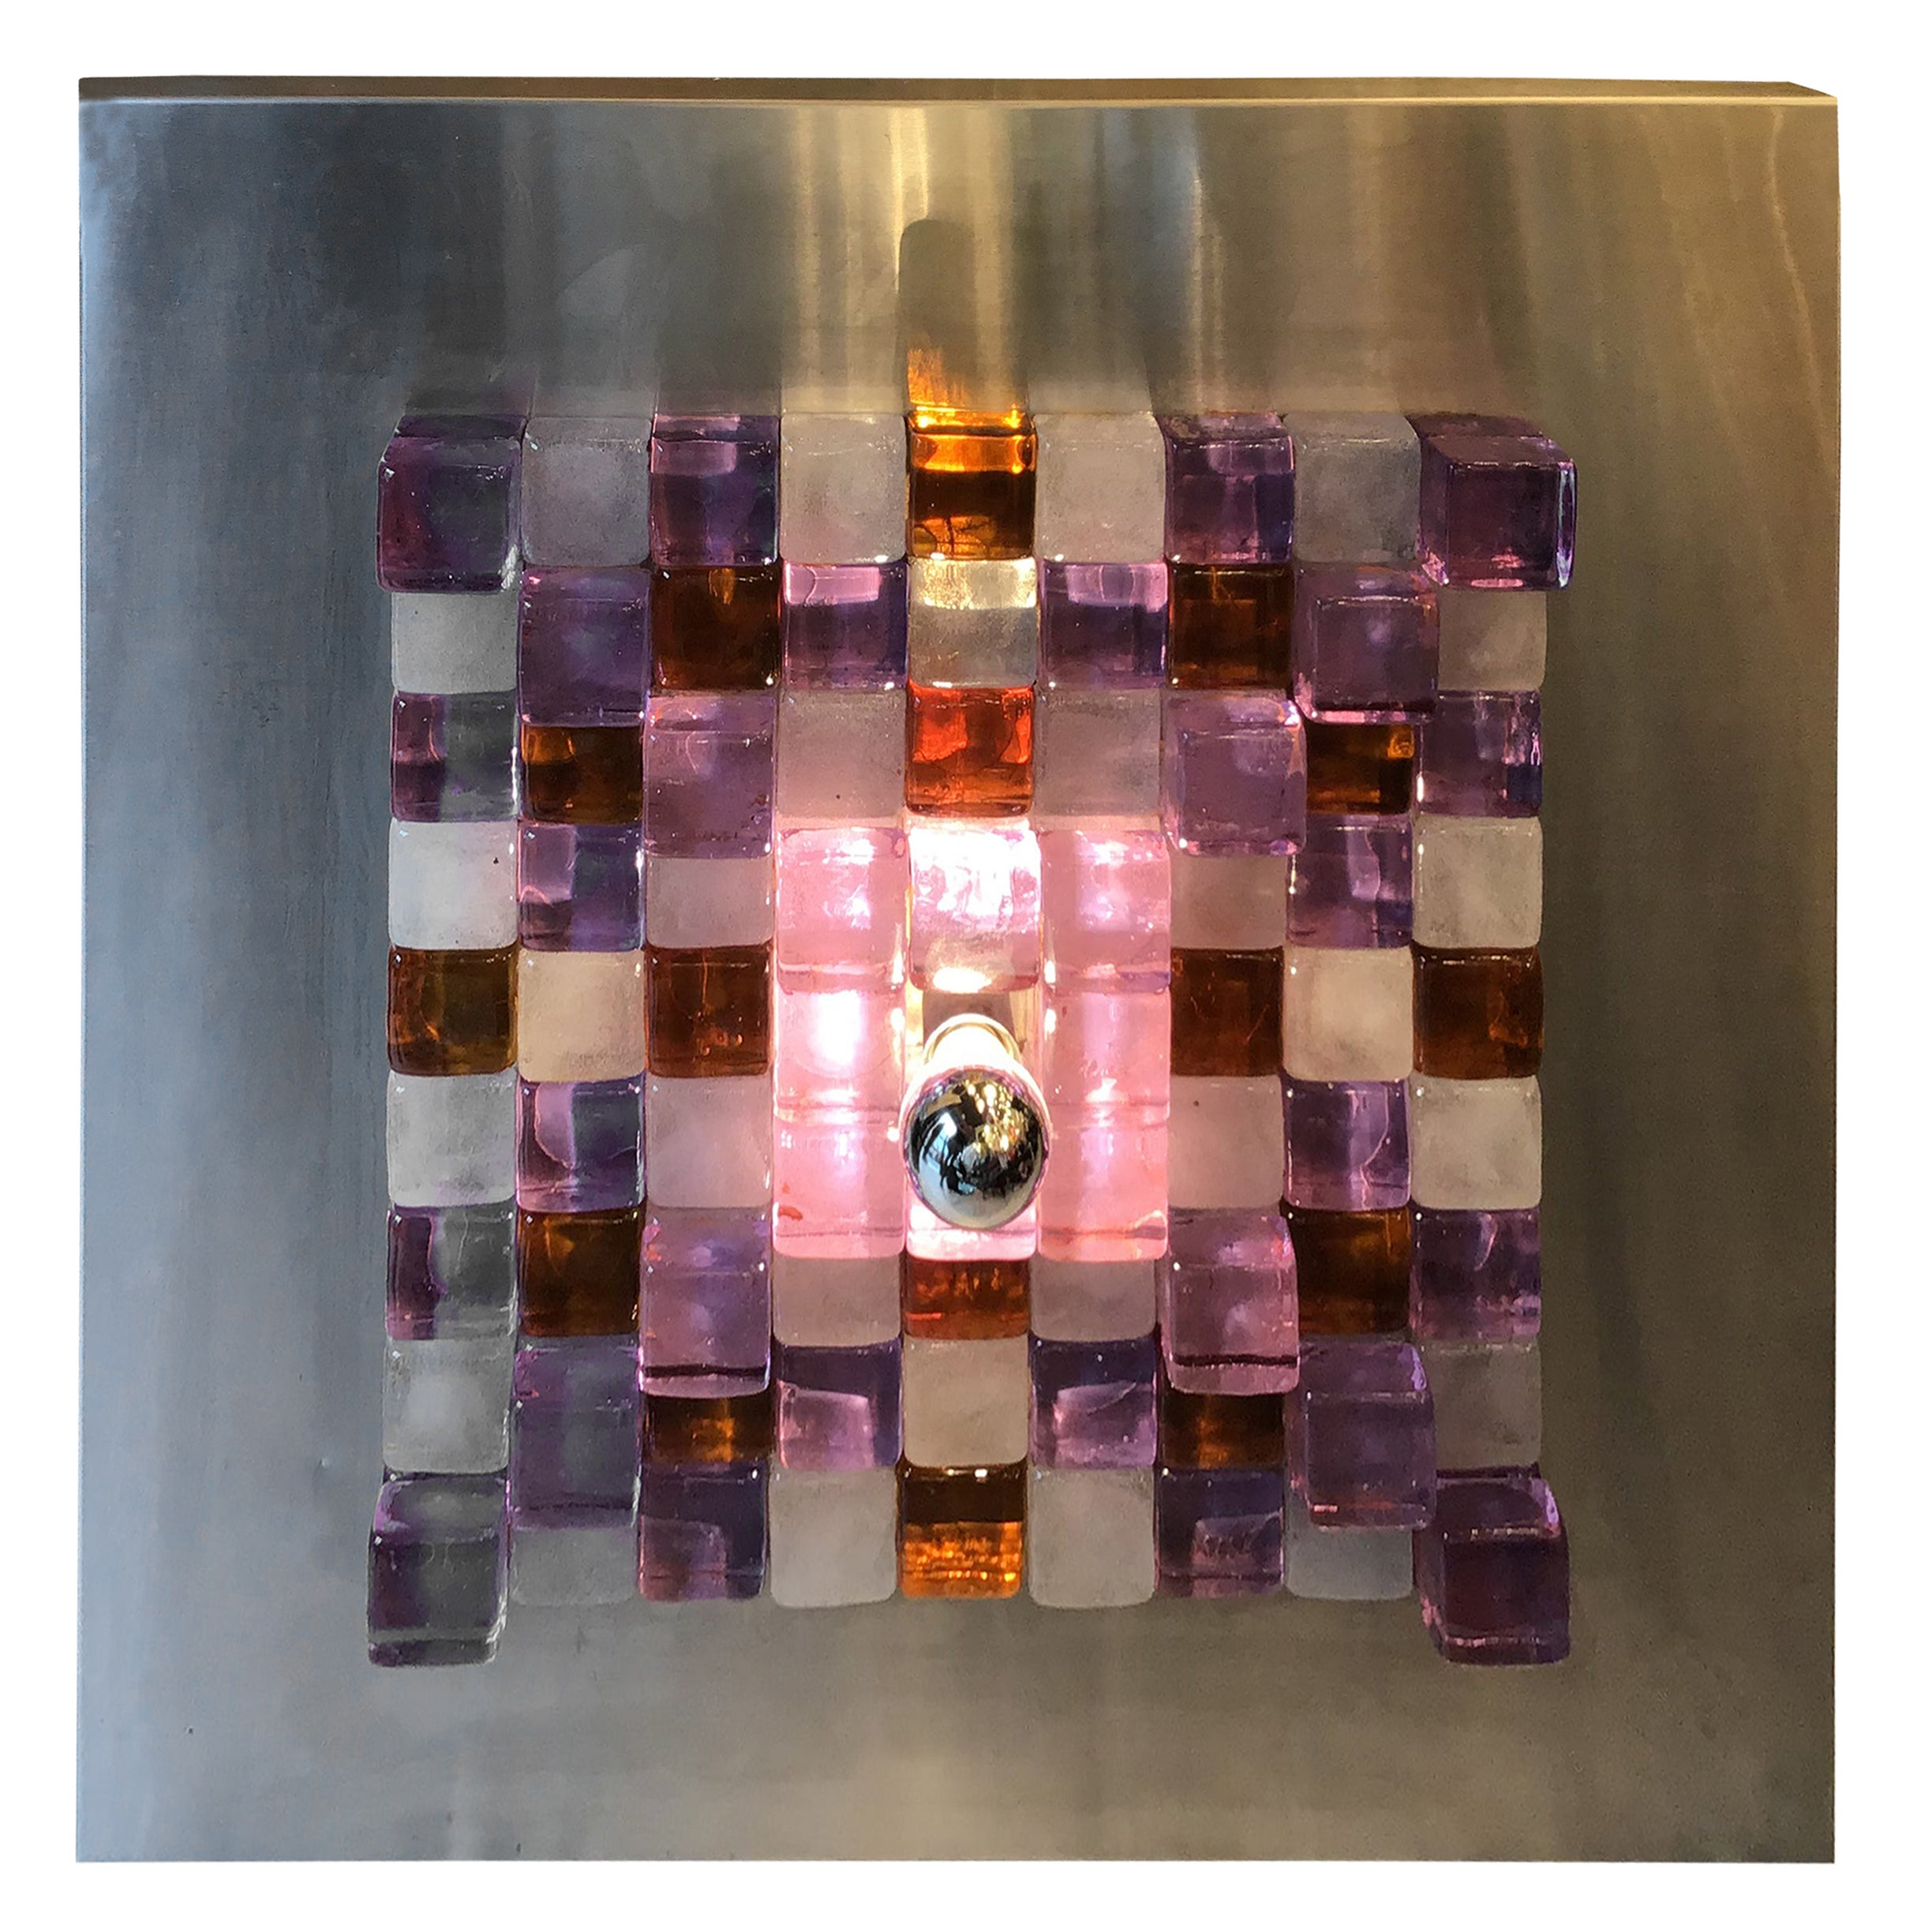 Poliarte by Albano Poli Sconce/Sculpture Metal Murano Glass, 1970, Italy